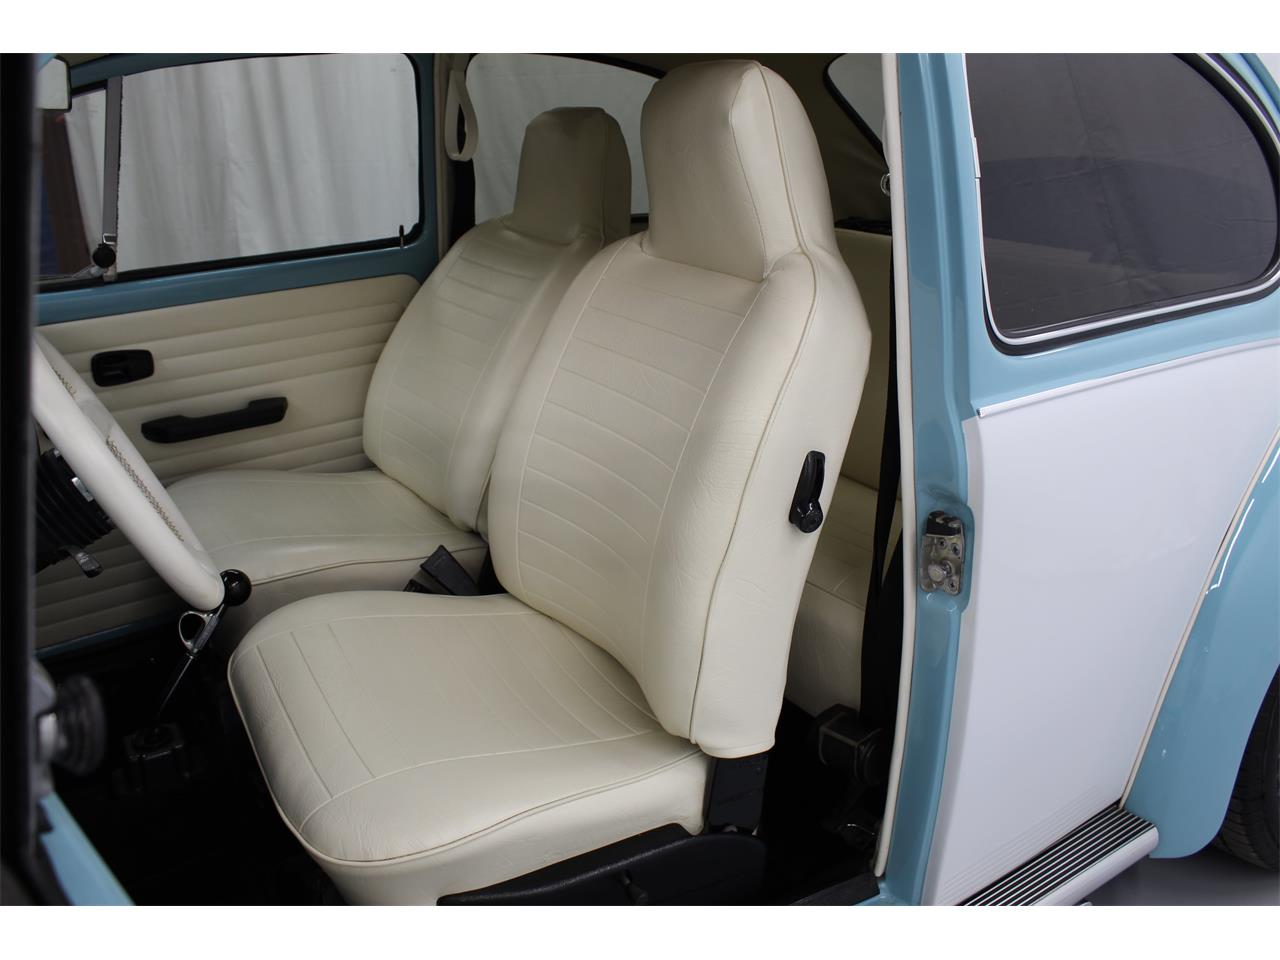 1974 Volkswagen Beetle for sale in Christiansburg, VA – photo 21